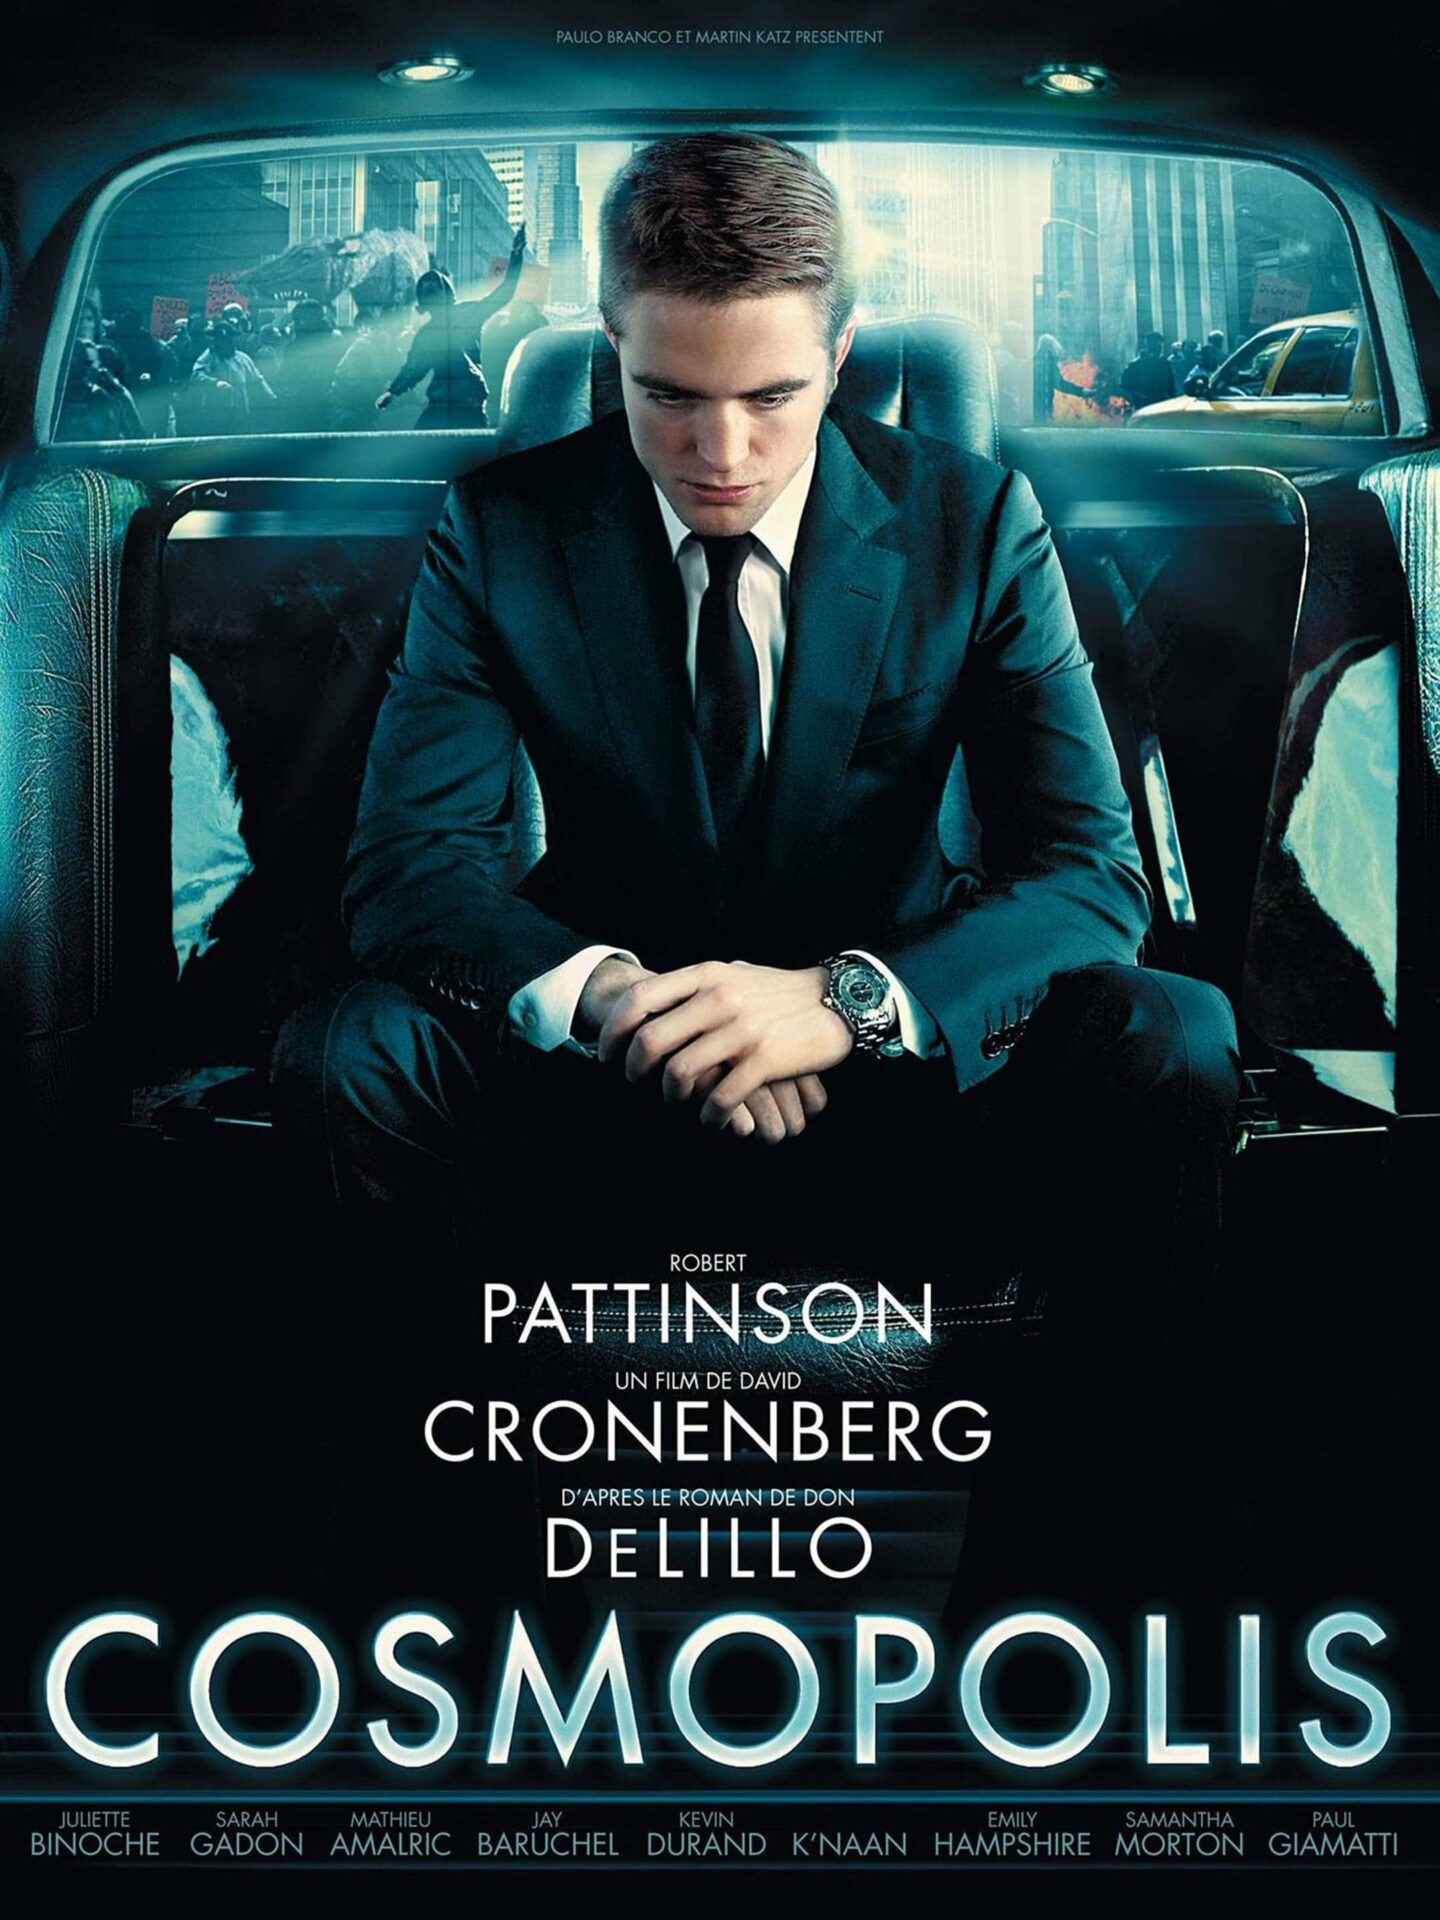 This is an image of the Cosmopolis movie poster. Actor Robert Pattinson is wearing a black suit and sitting in the back of a car.